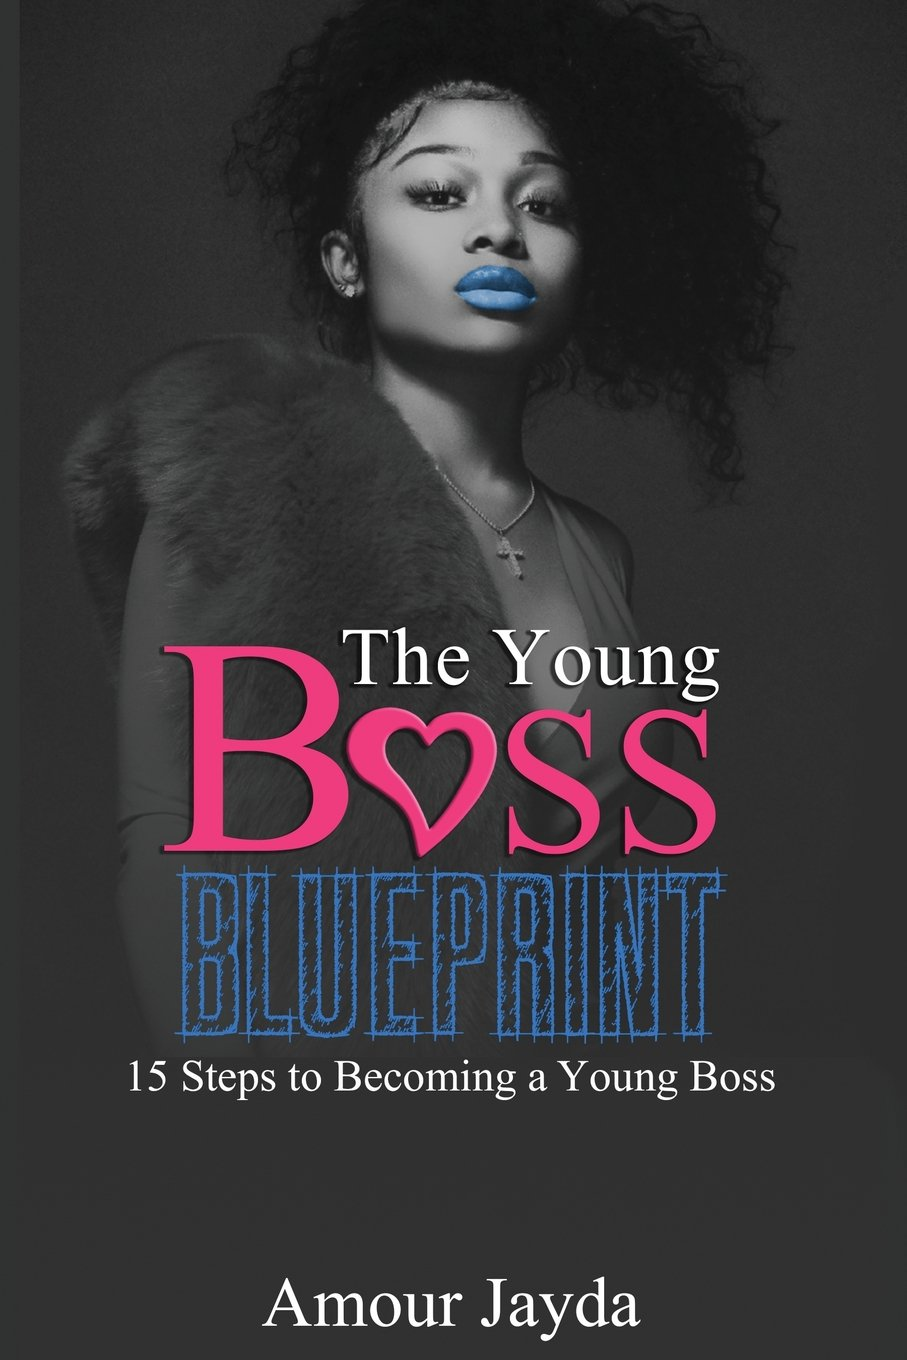 Download The Young Boss Blueprint: 15 Steps to Becoming a Young Boss pdf